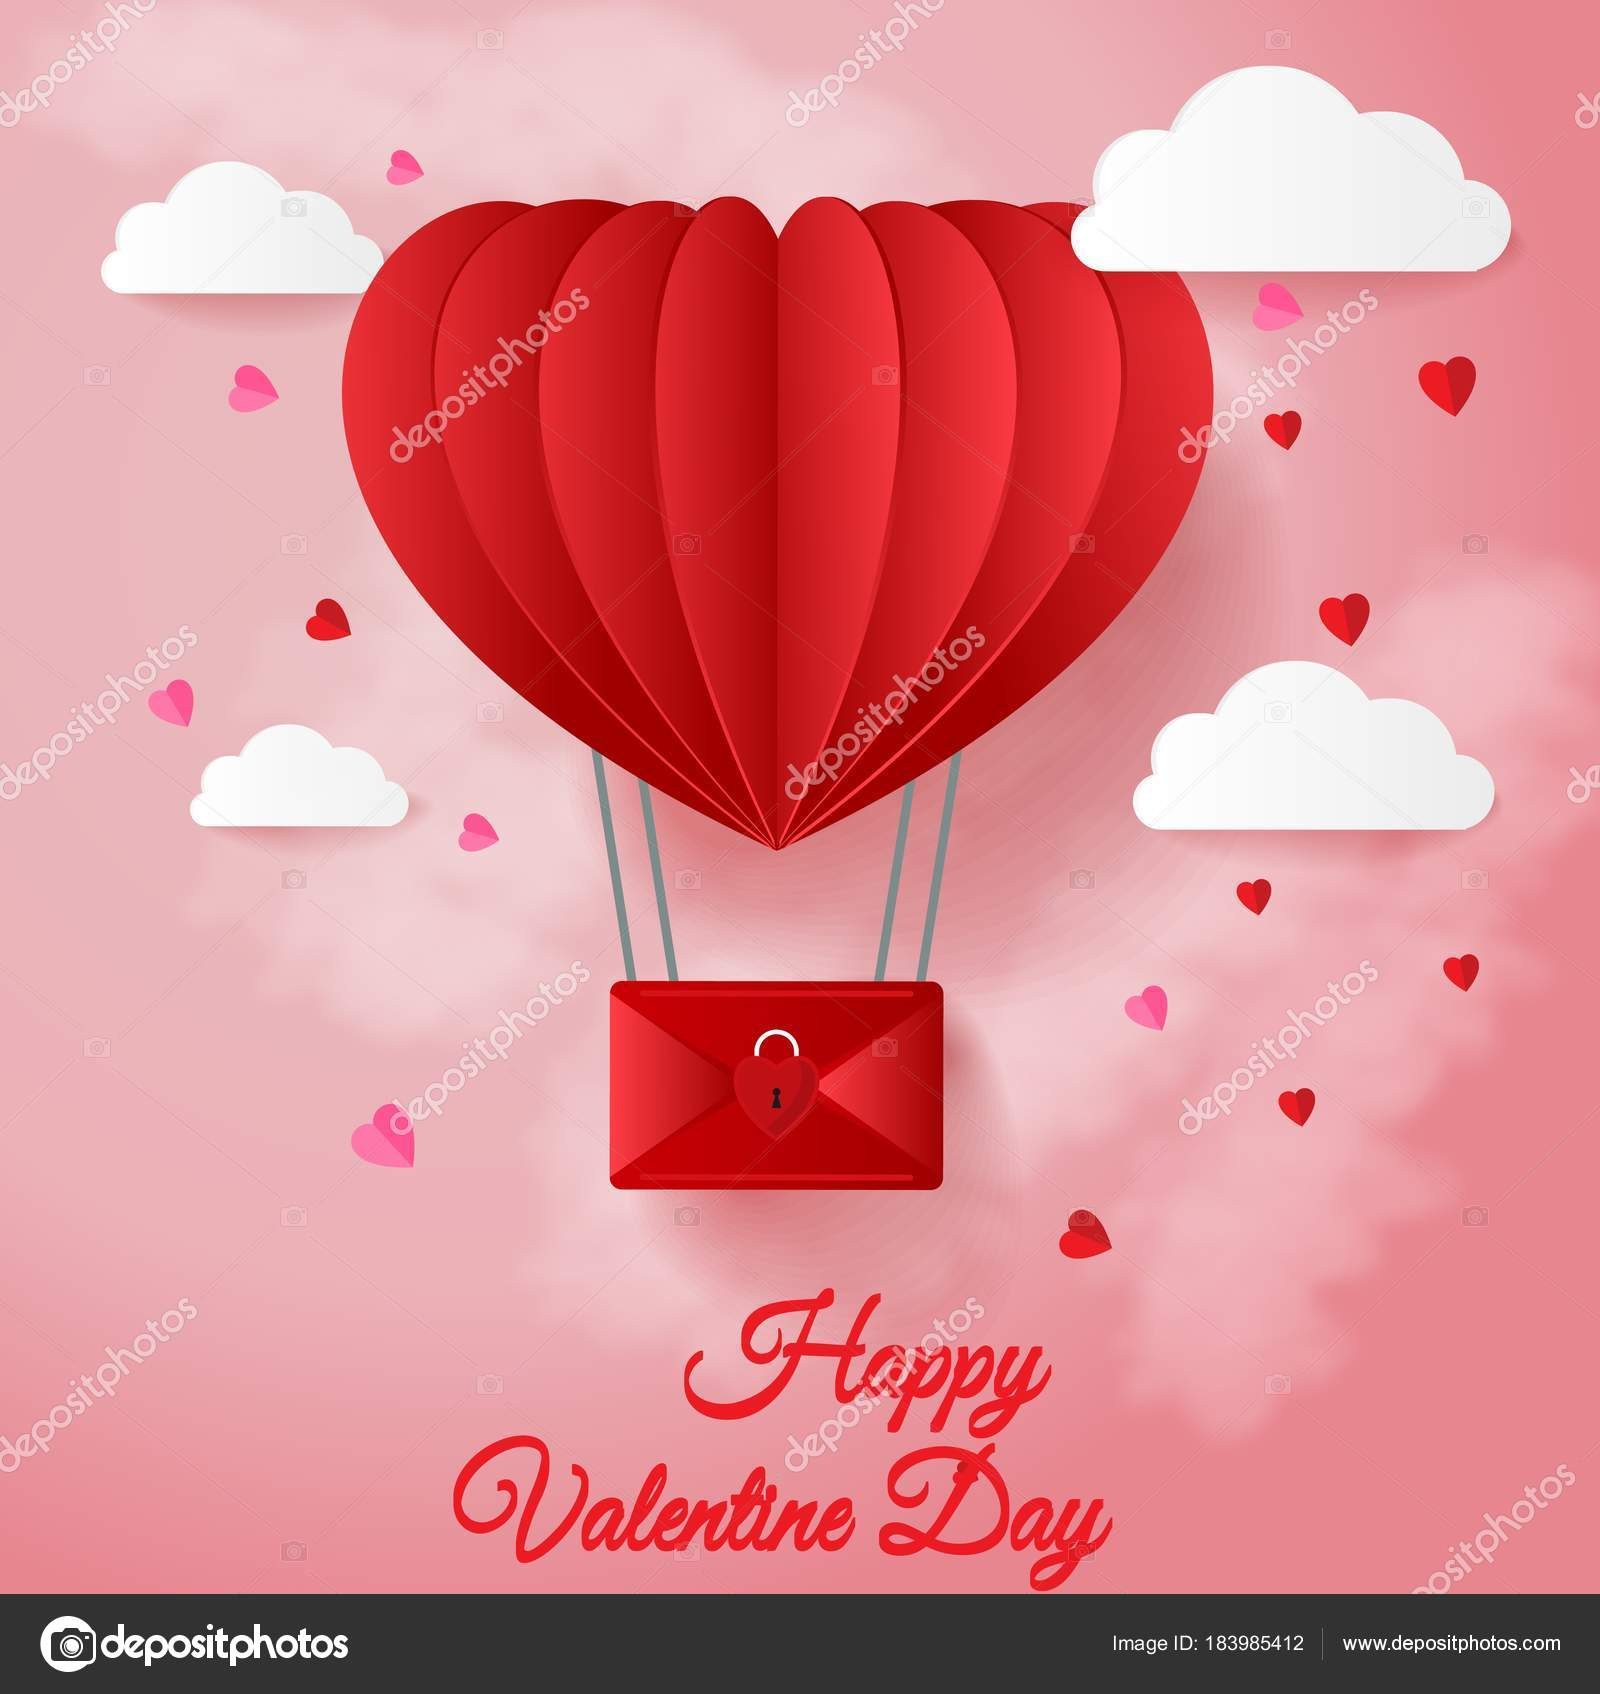 Happy valentines day greetings card paper cut red heart shape happy valentines day greetings card paper cut red heart shape stock vector kristyandbryce Choice Image